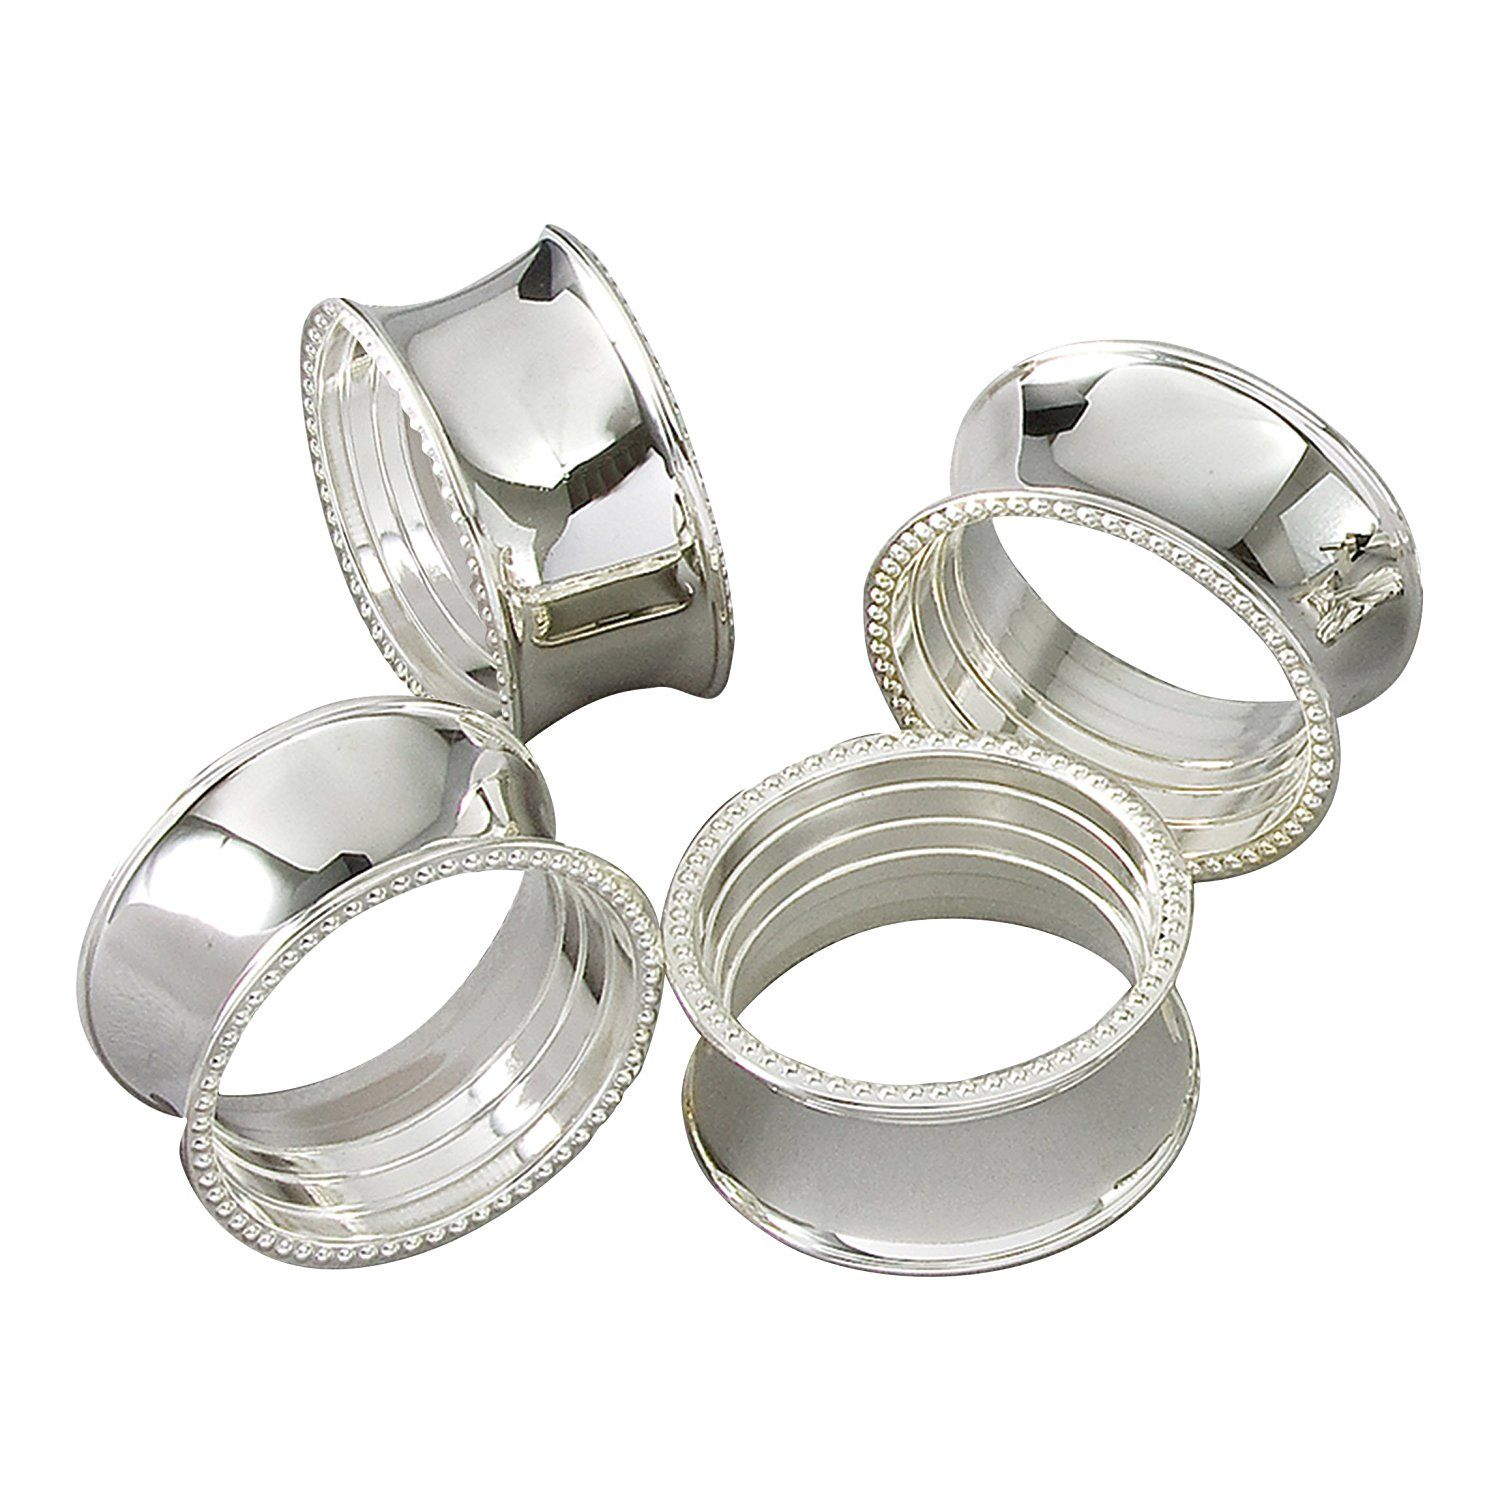 Table Decorations Jofefe 8pcs Gold Napkin Rings Round Napkin Holders Buckles for Wedding Dinner Party